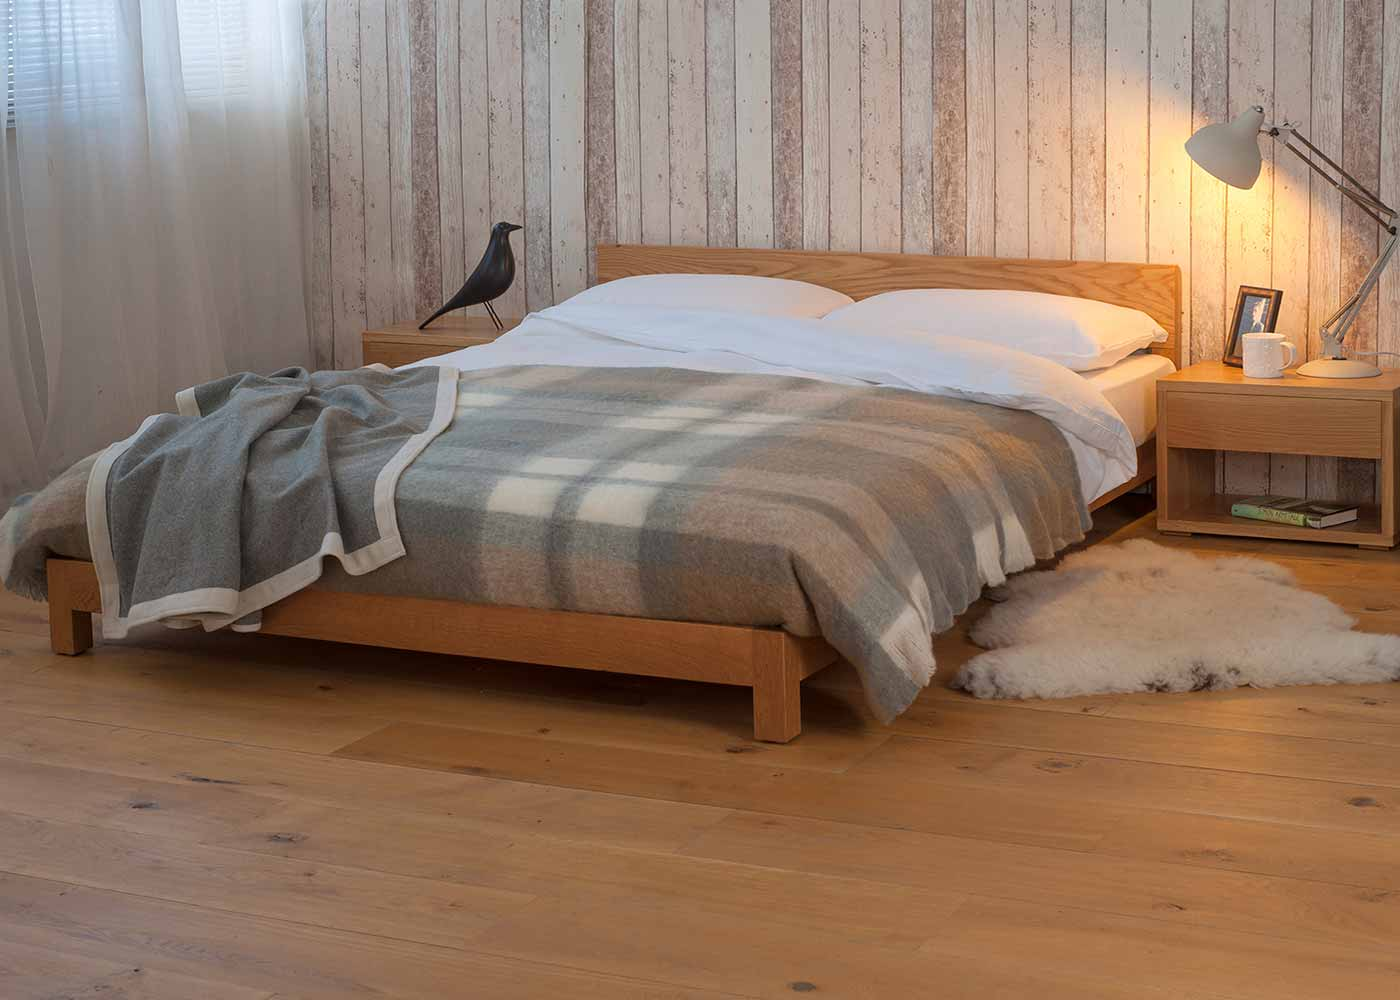 Nevada a low solid wood bed hand made in a range of bed sizes